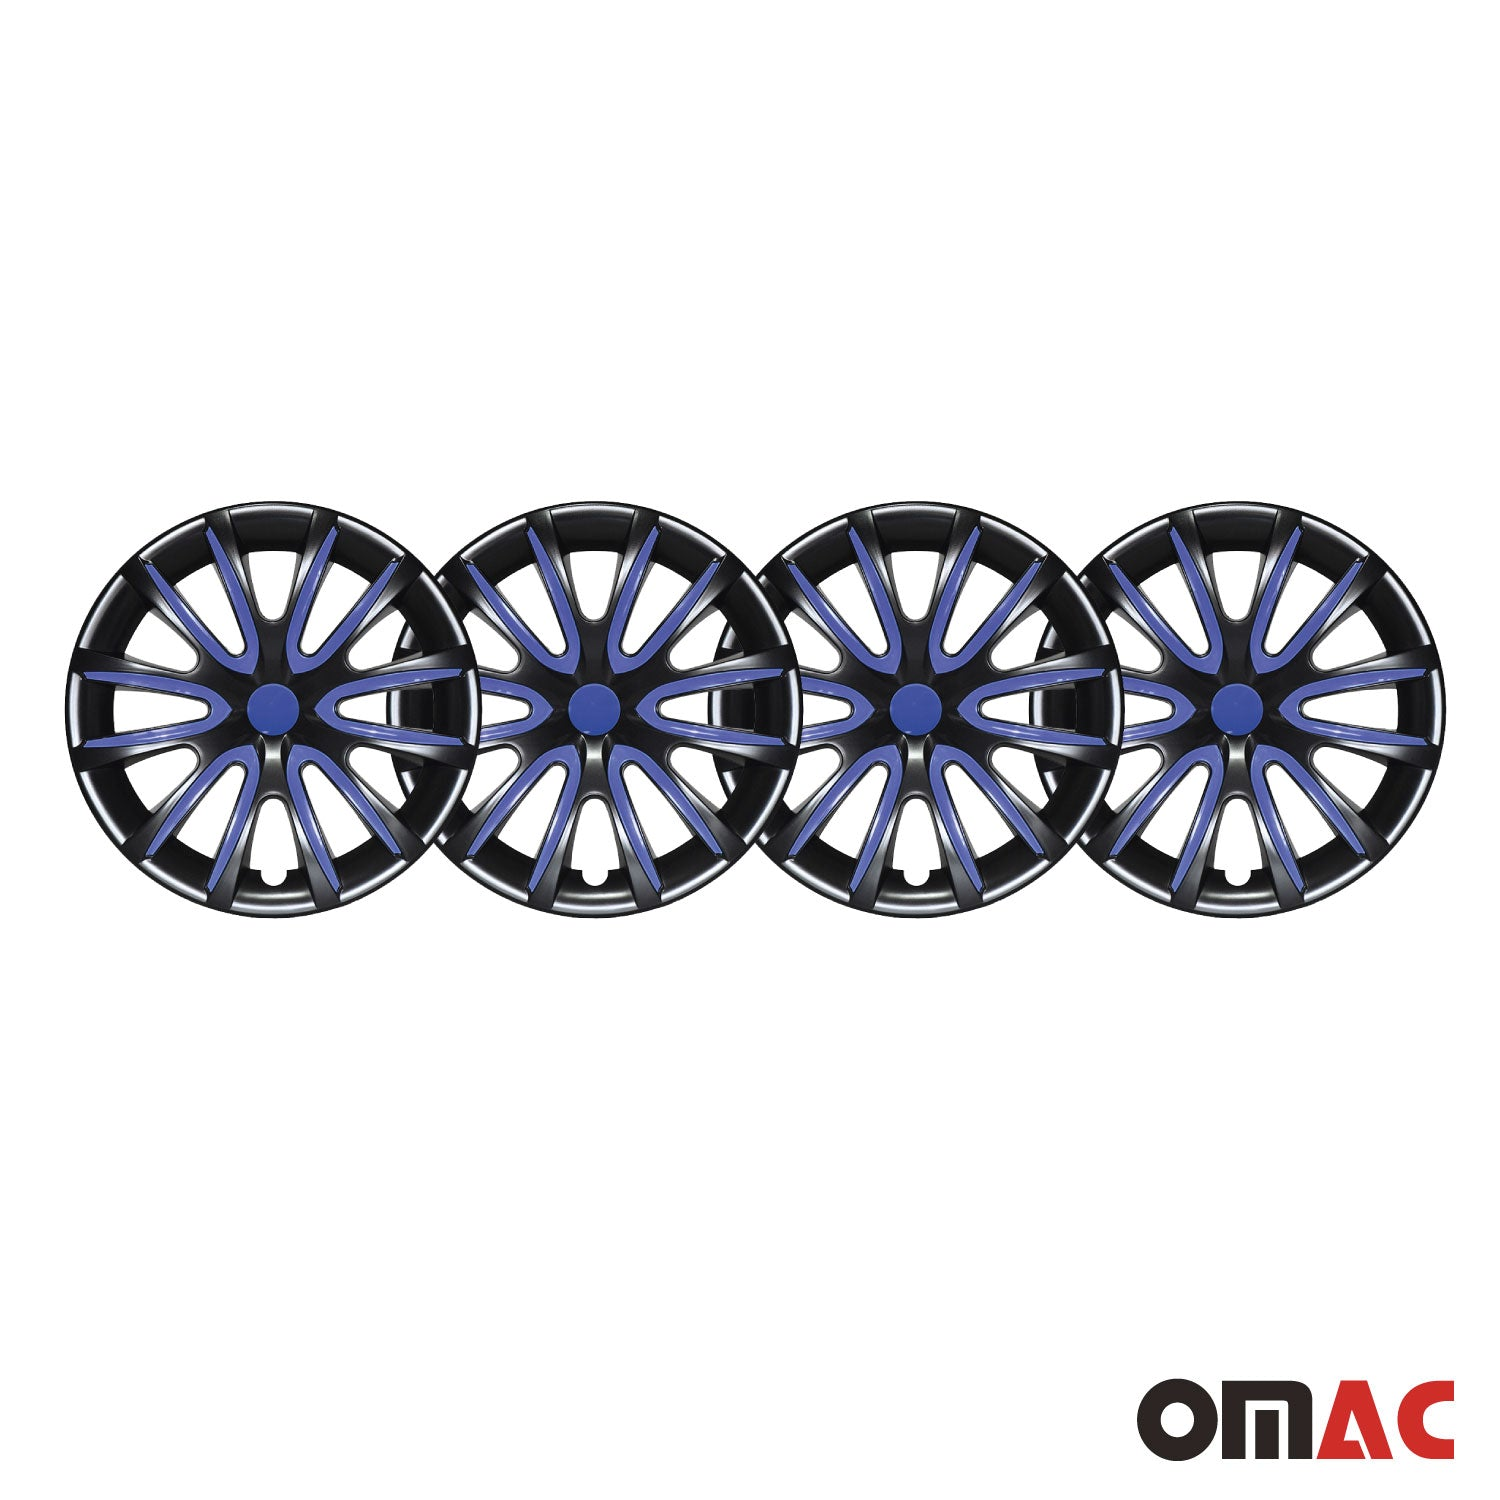 "15""Inch Hubcaps Wheel Cover For Mercedes Glossy Black Dark Blue Insert 4pcs Set"